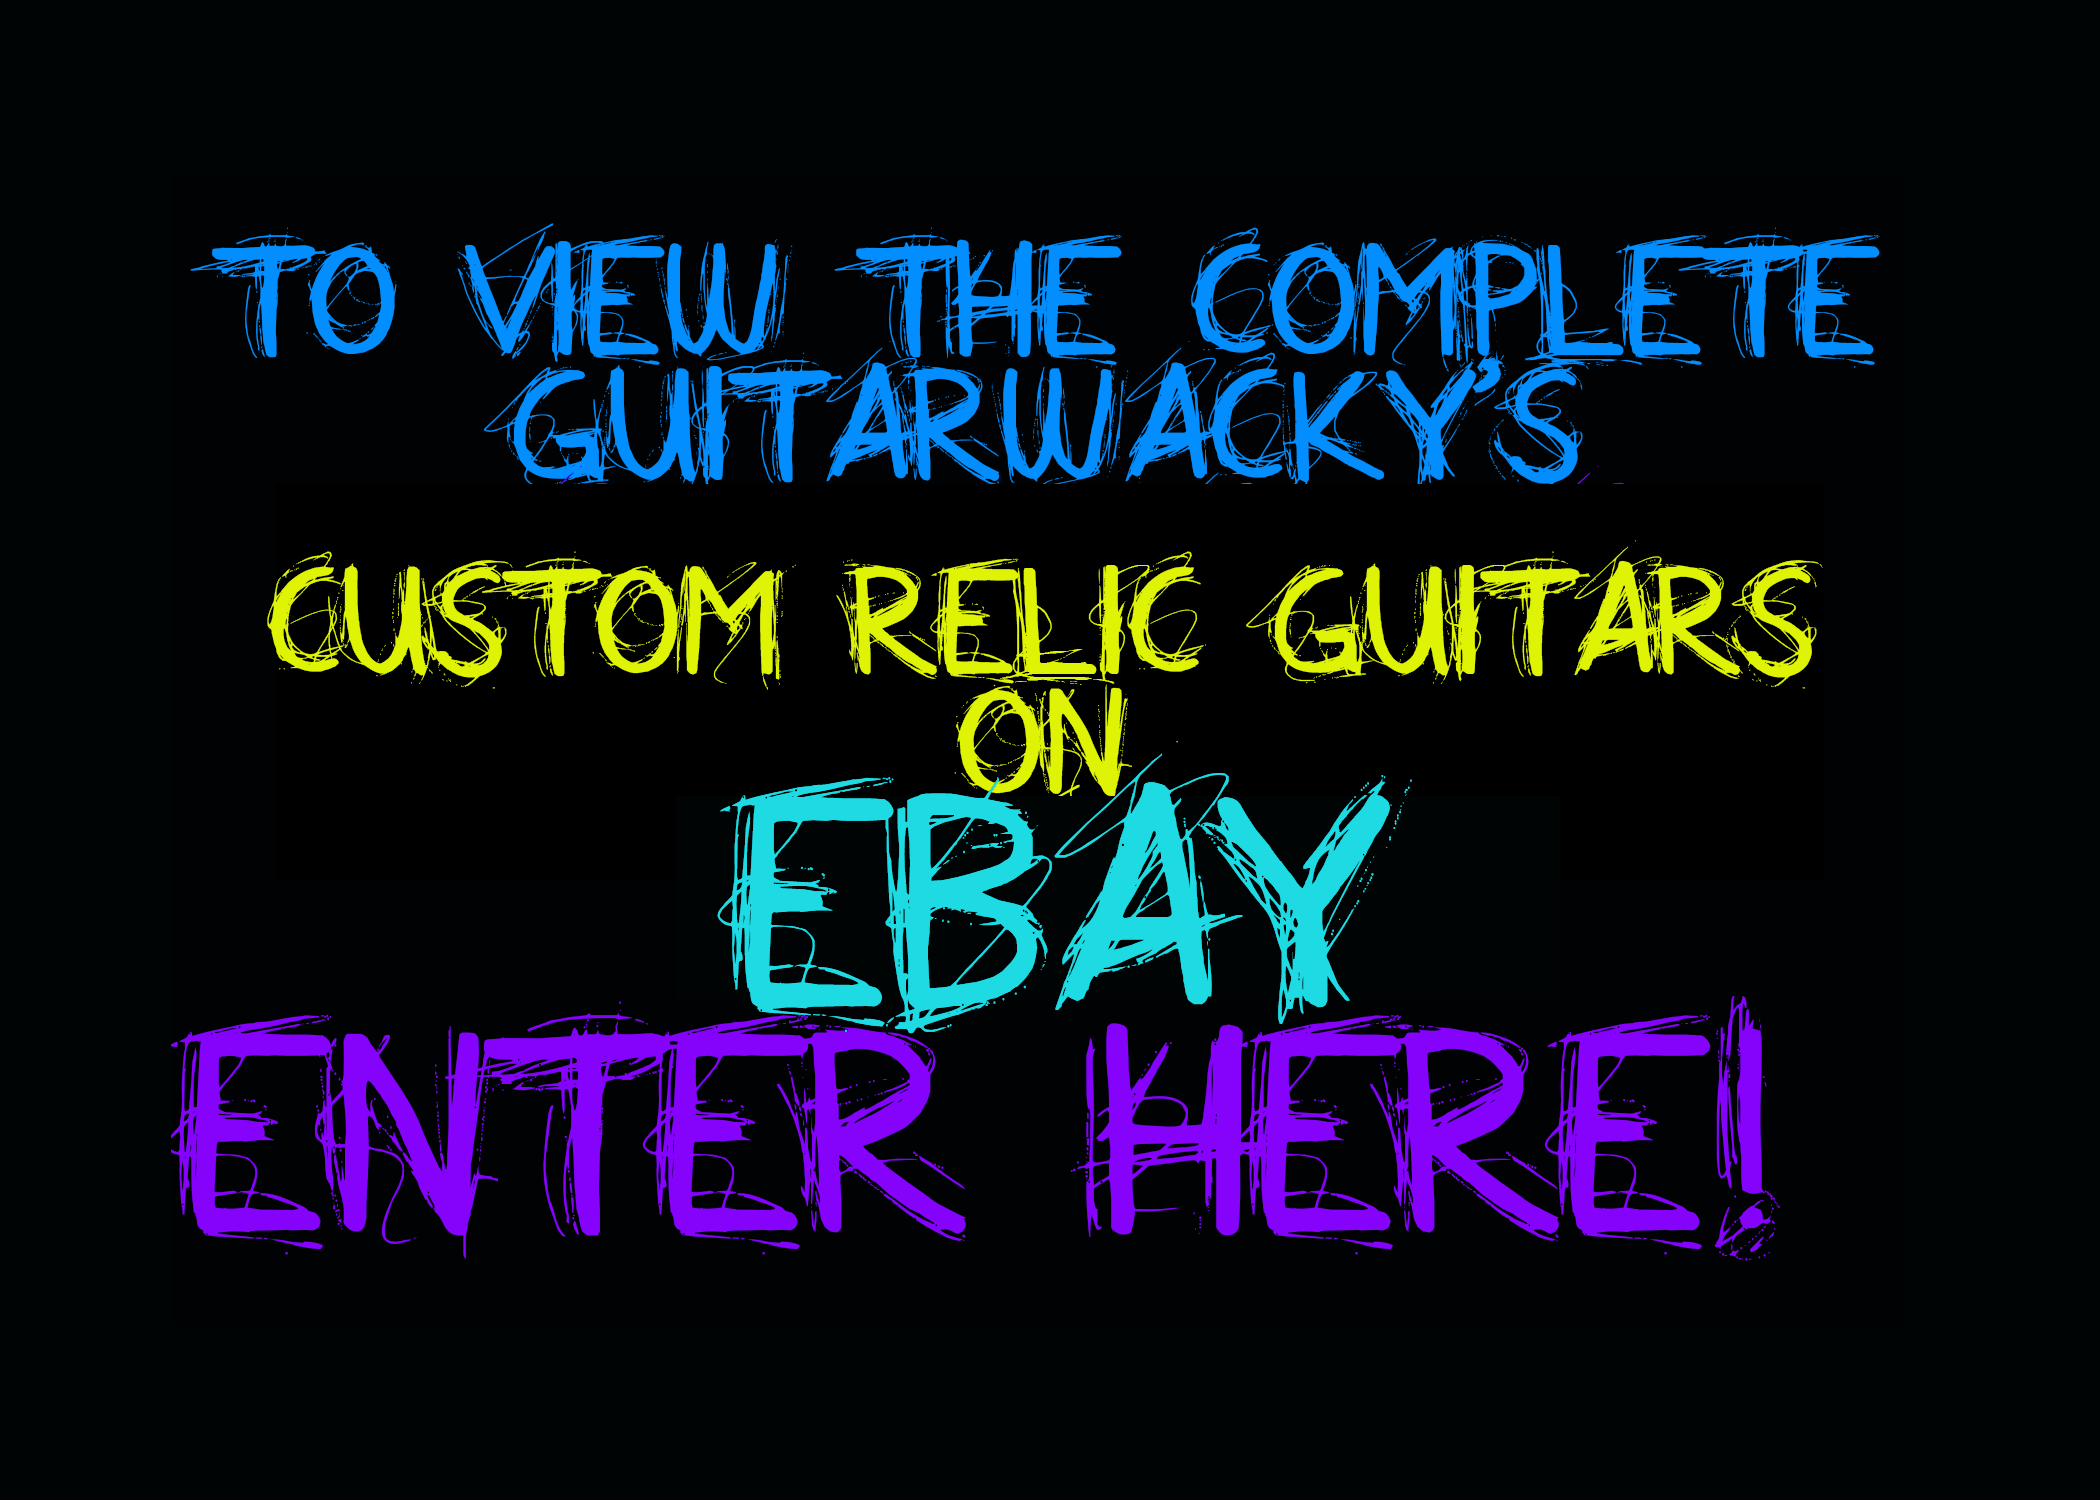 Relic Guitars for Sale Guitarwacky.com